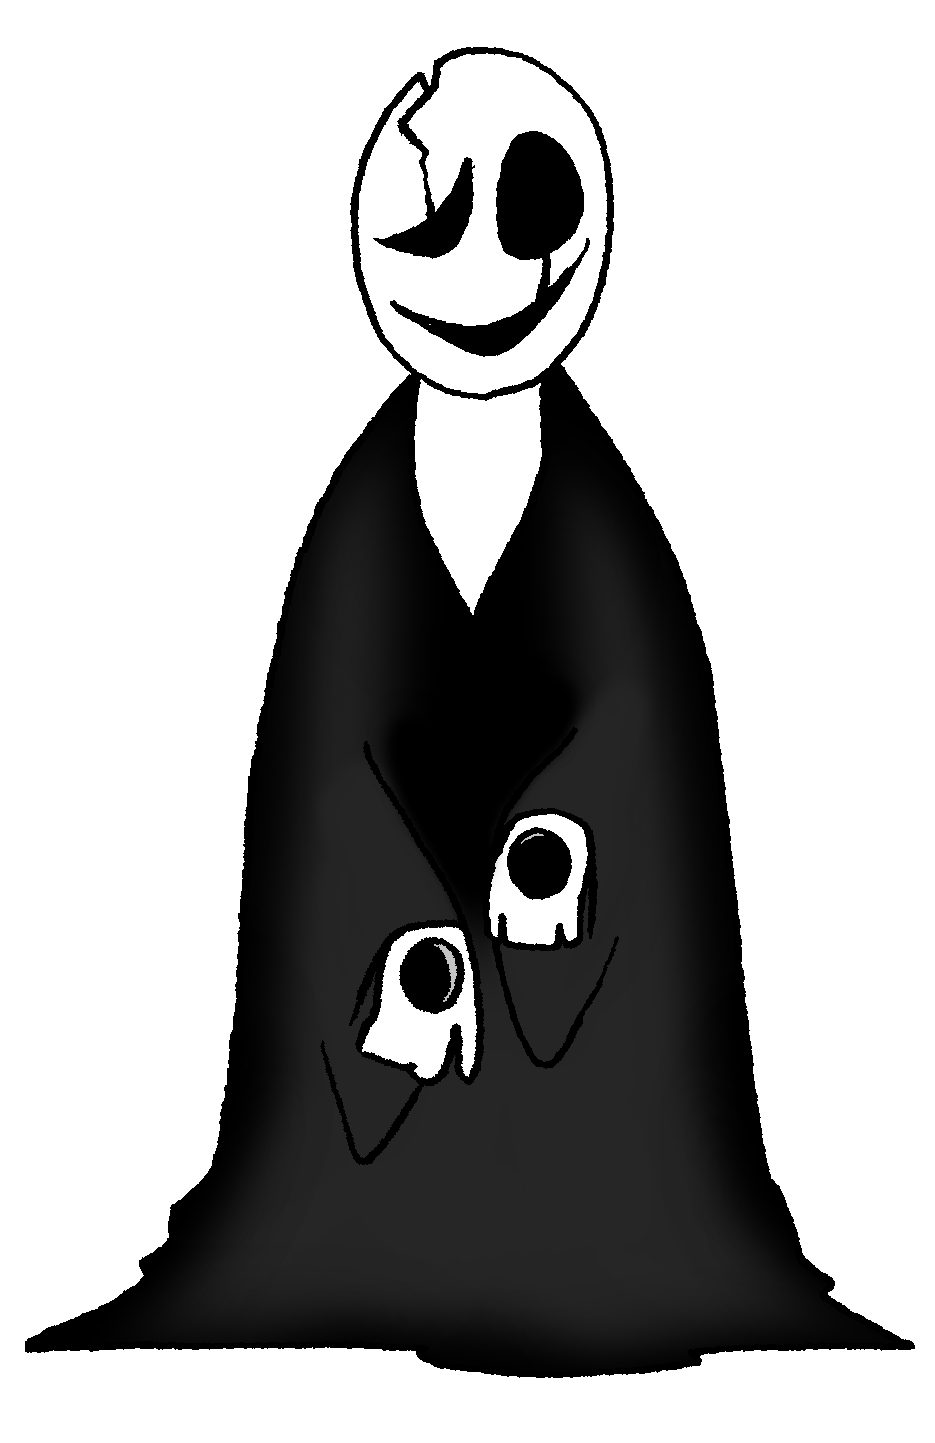 Mystery clipart mysterious figure. Free man cliparts download